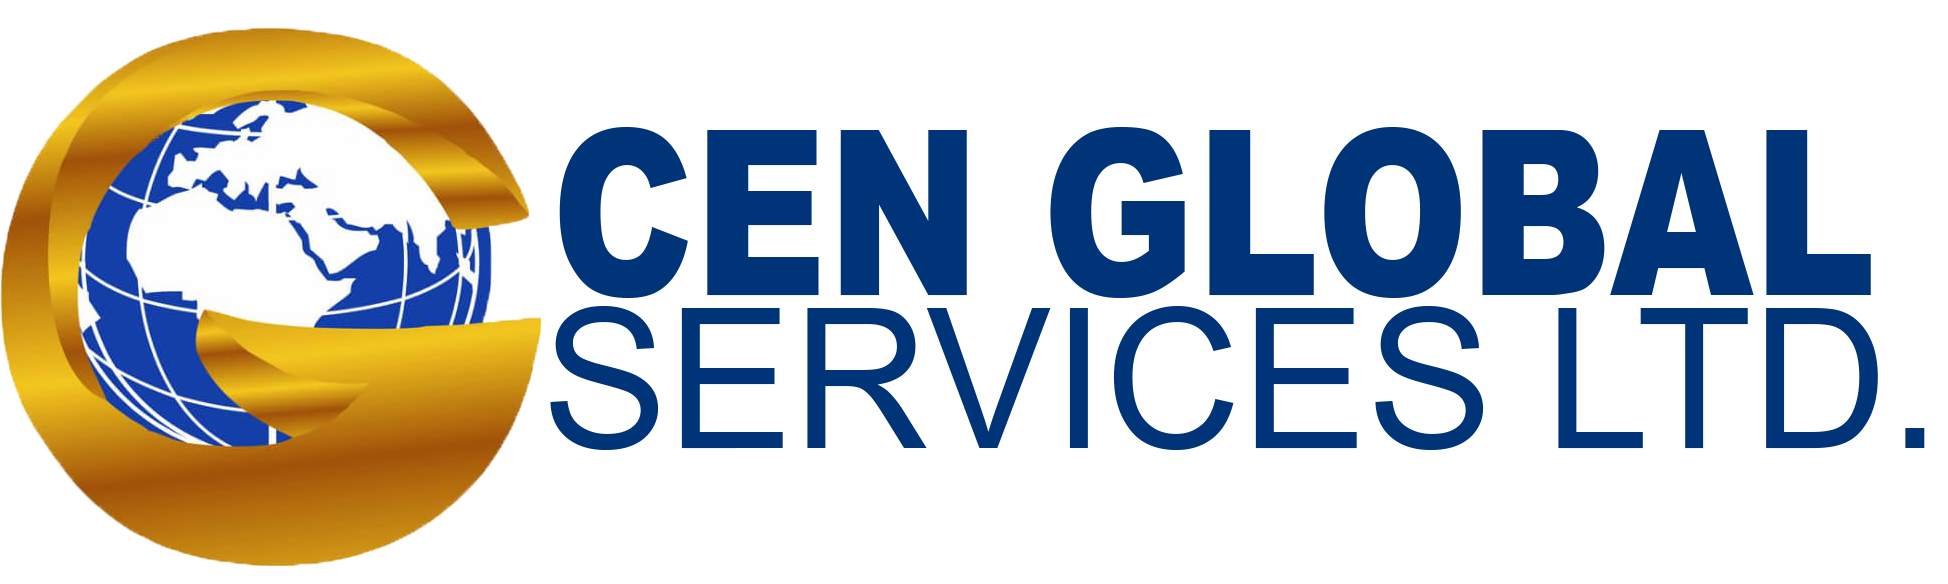 CEN GLOBAL SERVICES LIMITED